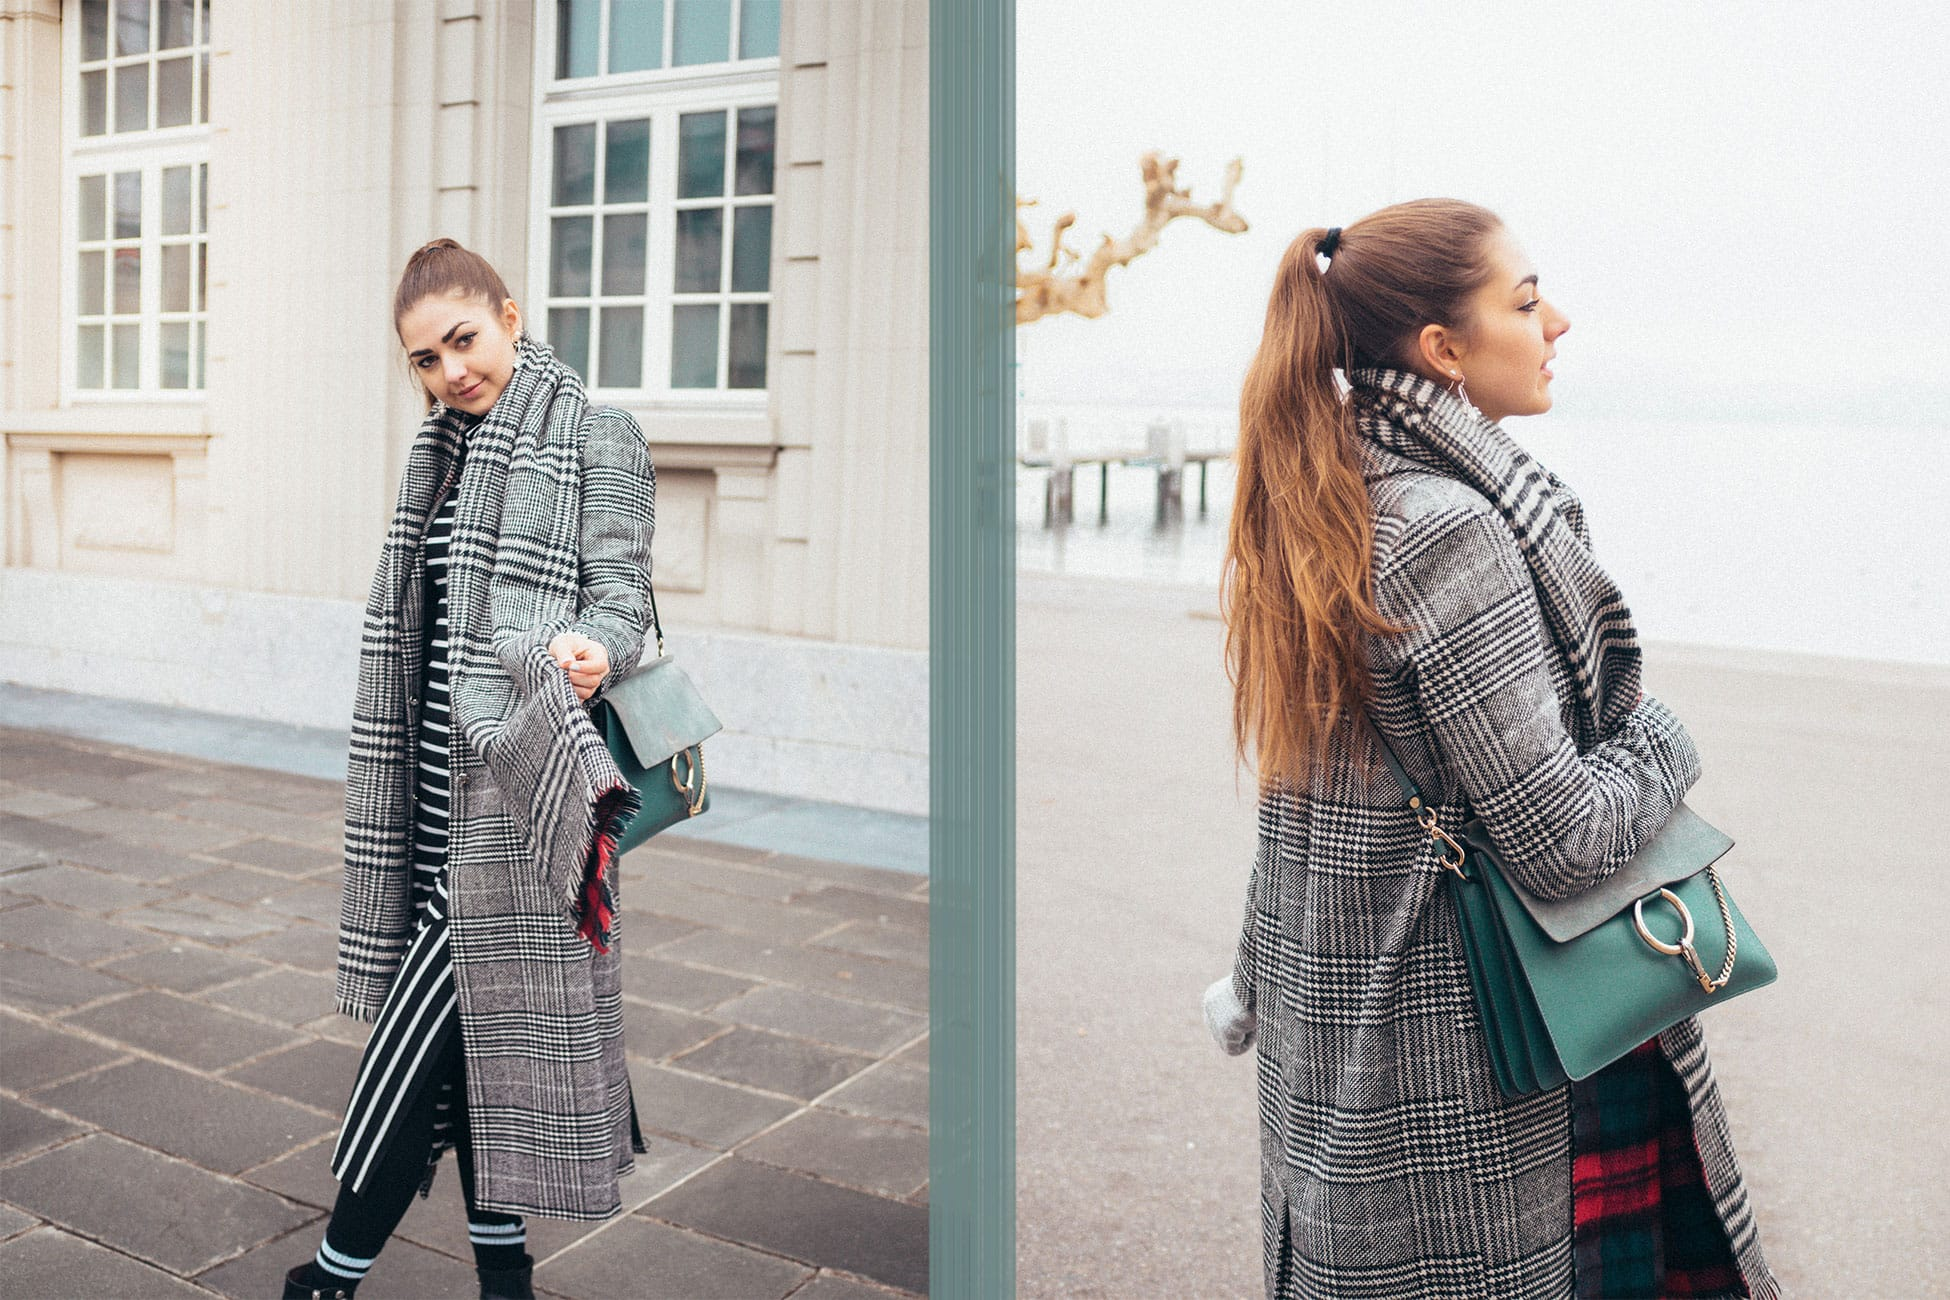 Checked-Coat/Chloé-Bag/Oversized-Coat/Outfit/Fashion/Outfitpost/Outfit-Photo/Ankle-Boots/Details